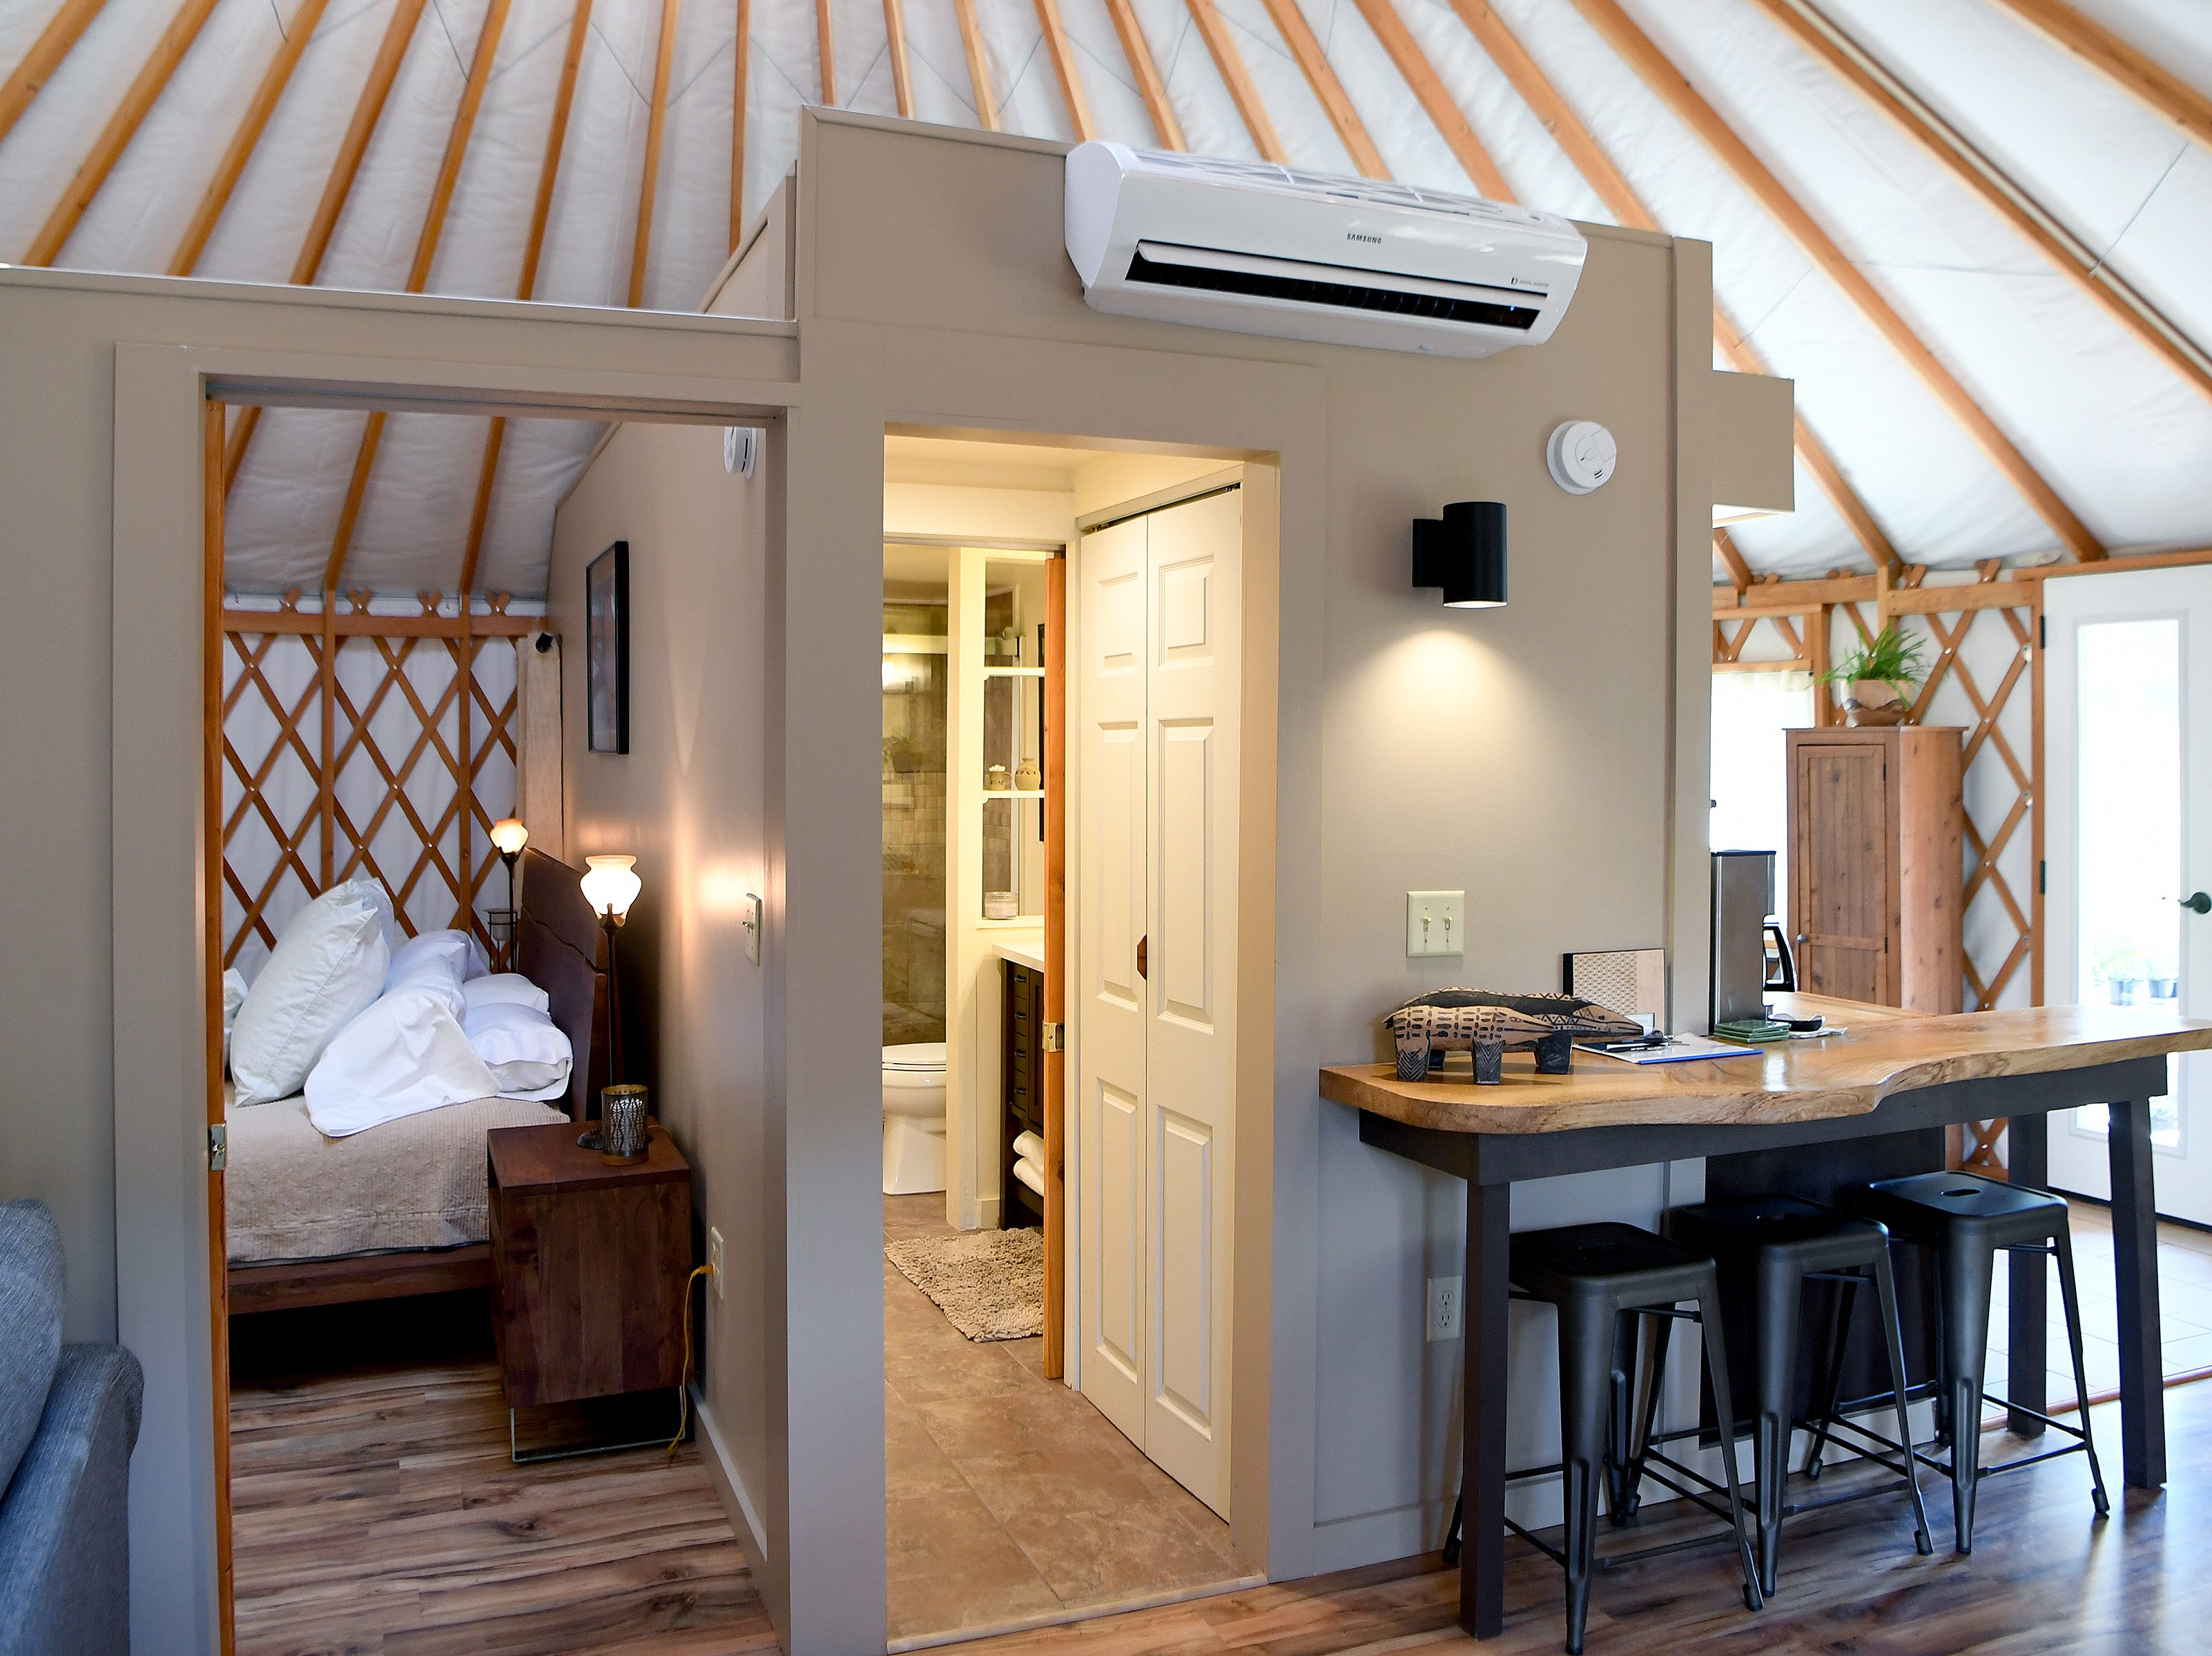 The Yin Yurt, an AirBnB rental on Ricardo Fernandez's property in Clyde, features all of the amenities of a small home including air conditioning, heating and a humidifier to make staying a comfortable experience. The bedroom and bathroom are partitioned from the rest of the living space.